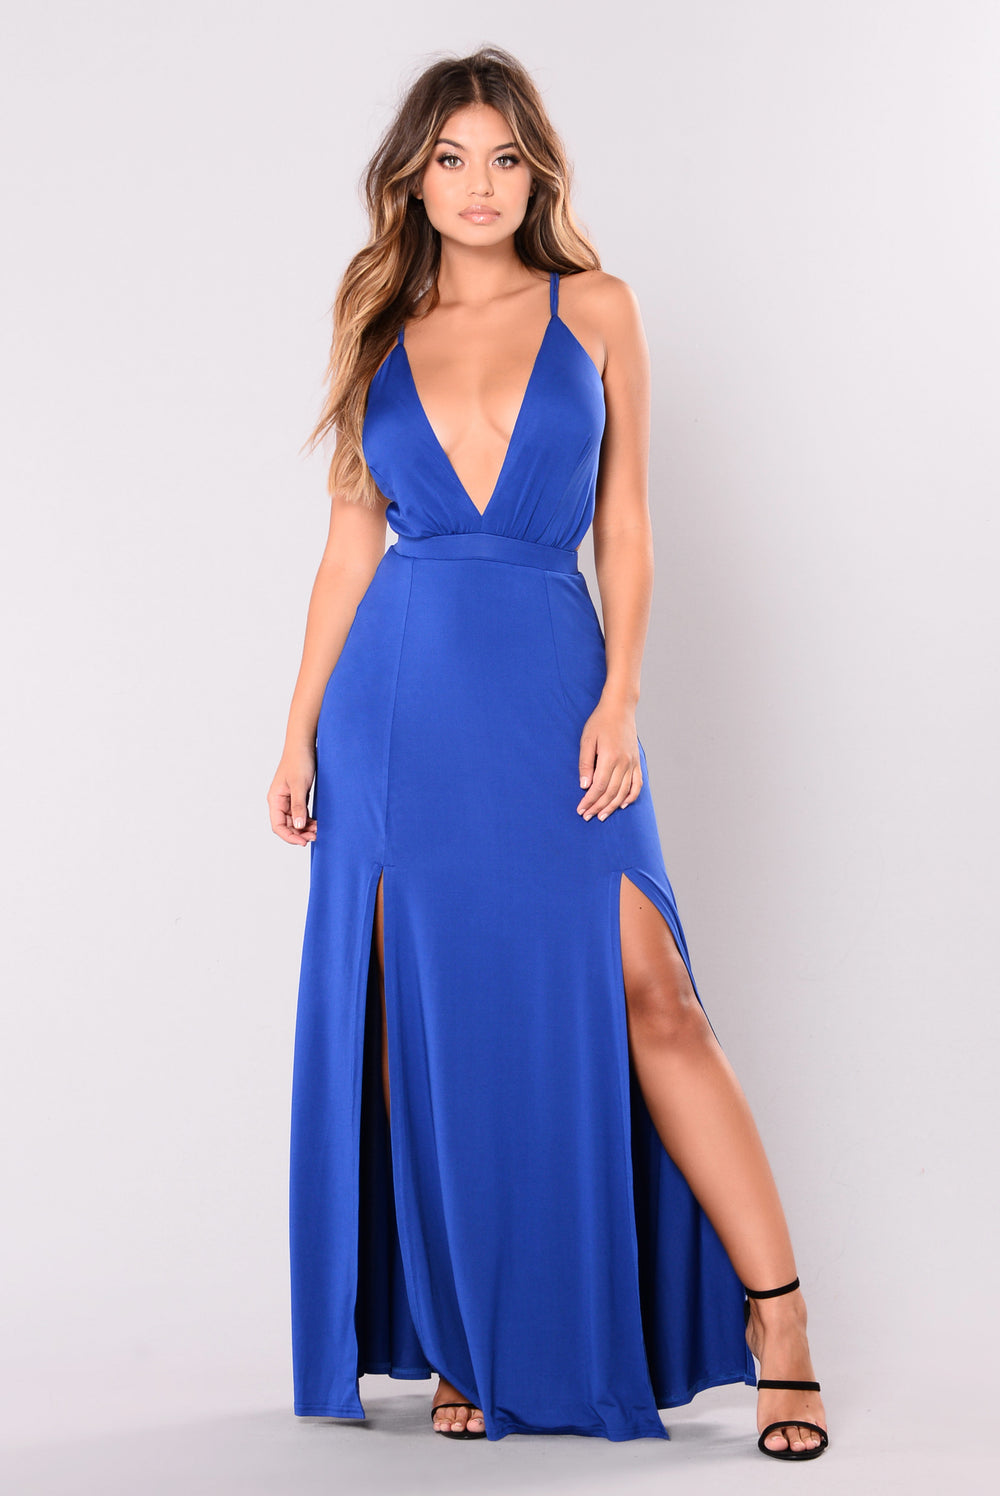 Take My Love Dress - Royal